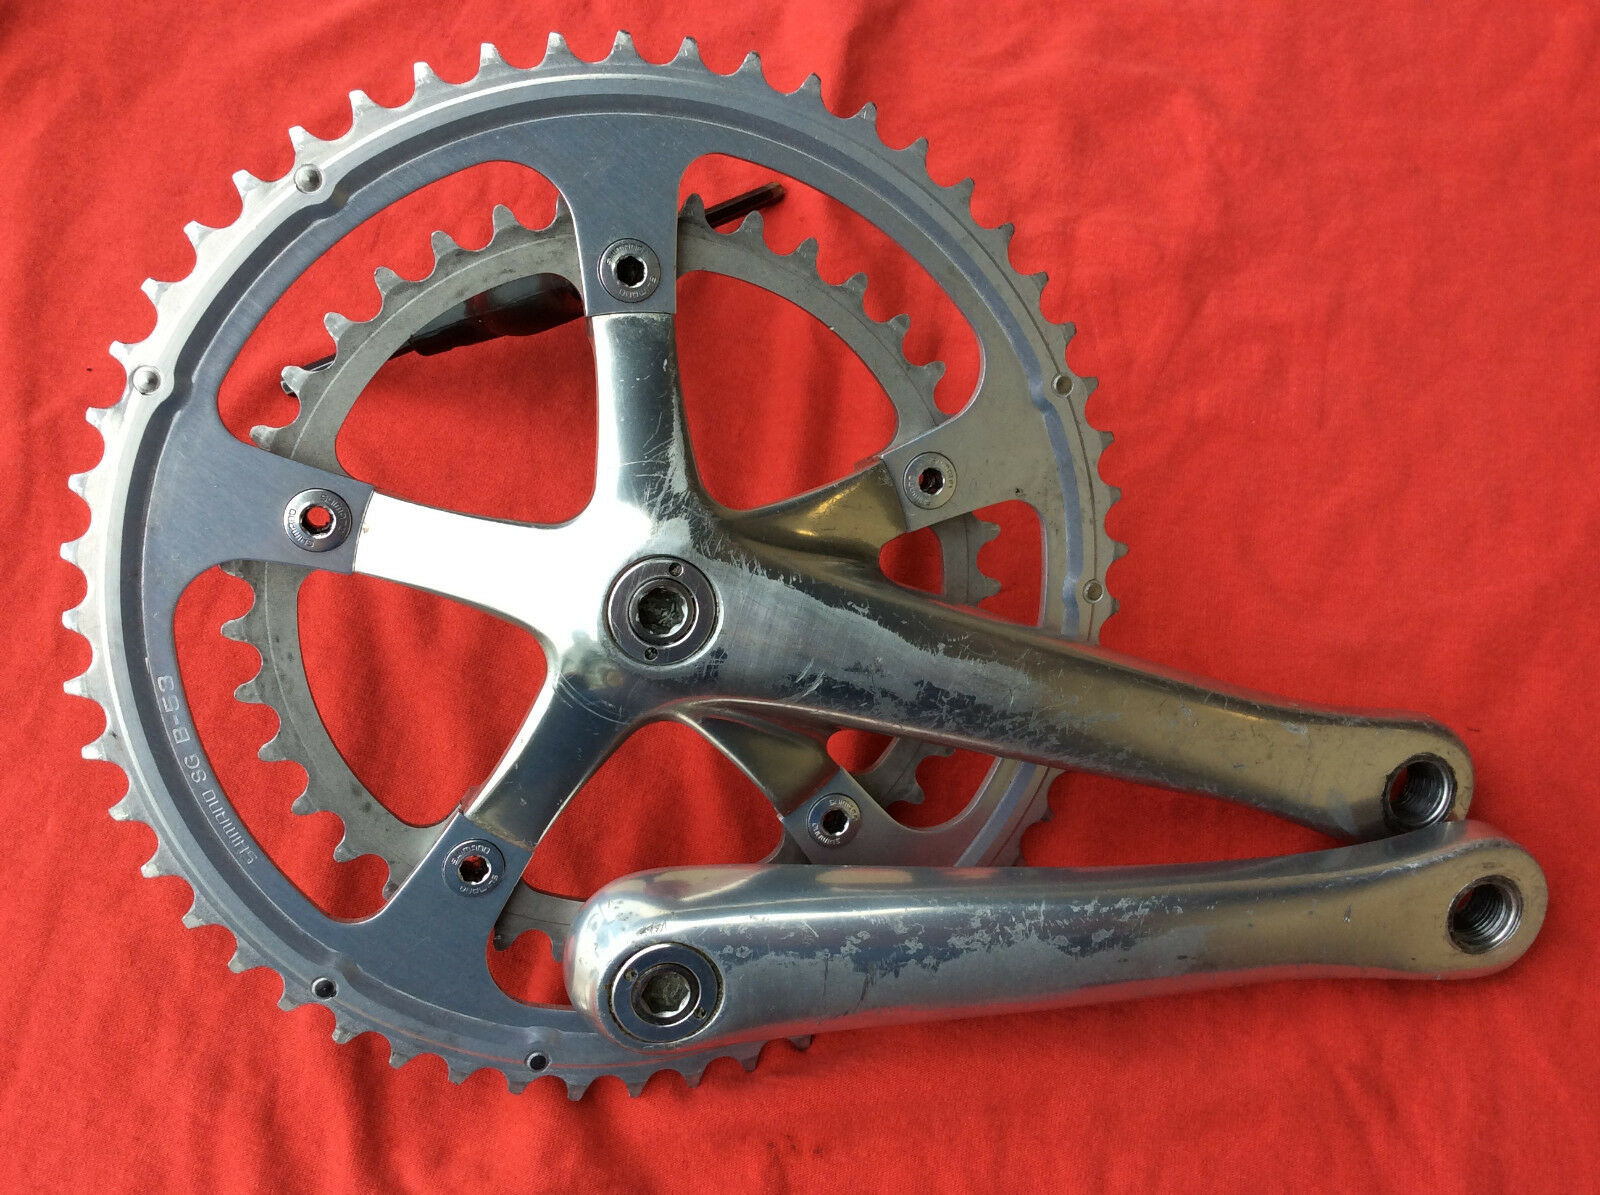 Shimano Dura Ace 7700 9Sp 175mm Octalink Crankset  GOOD condition  credit guarantee